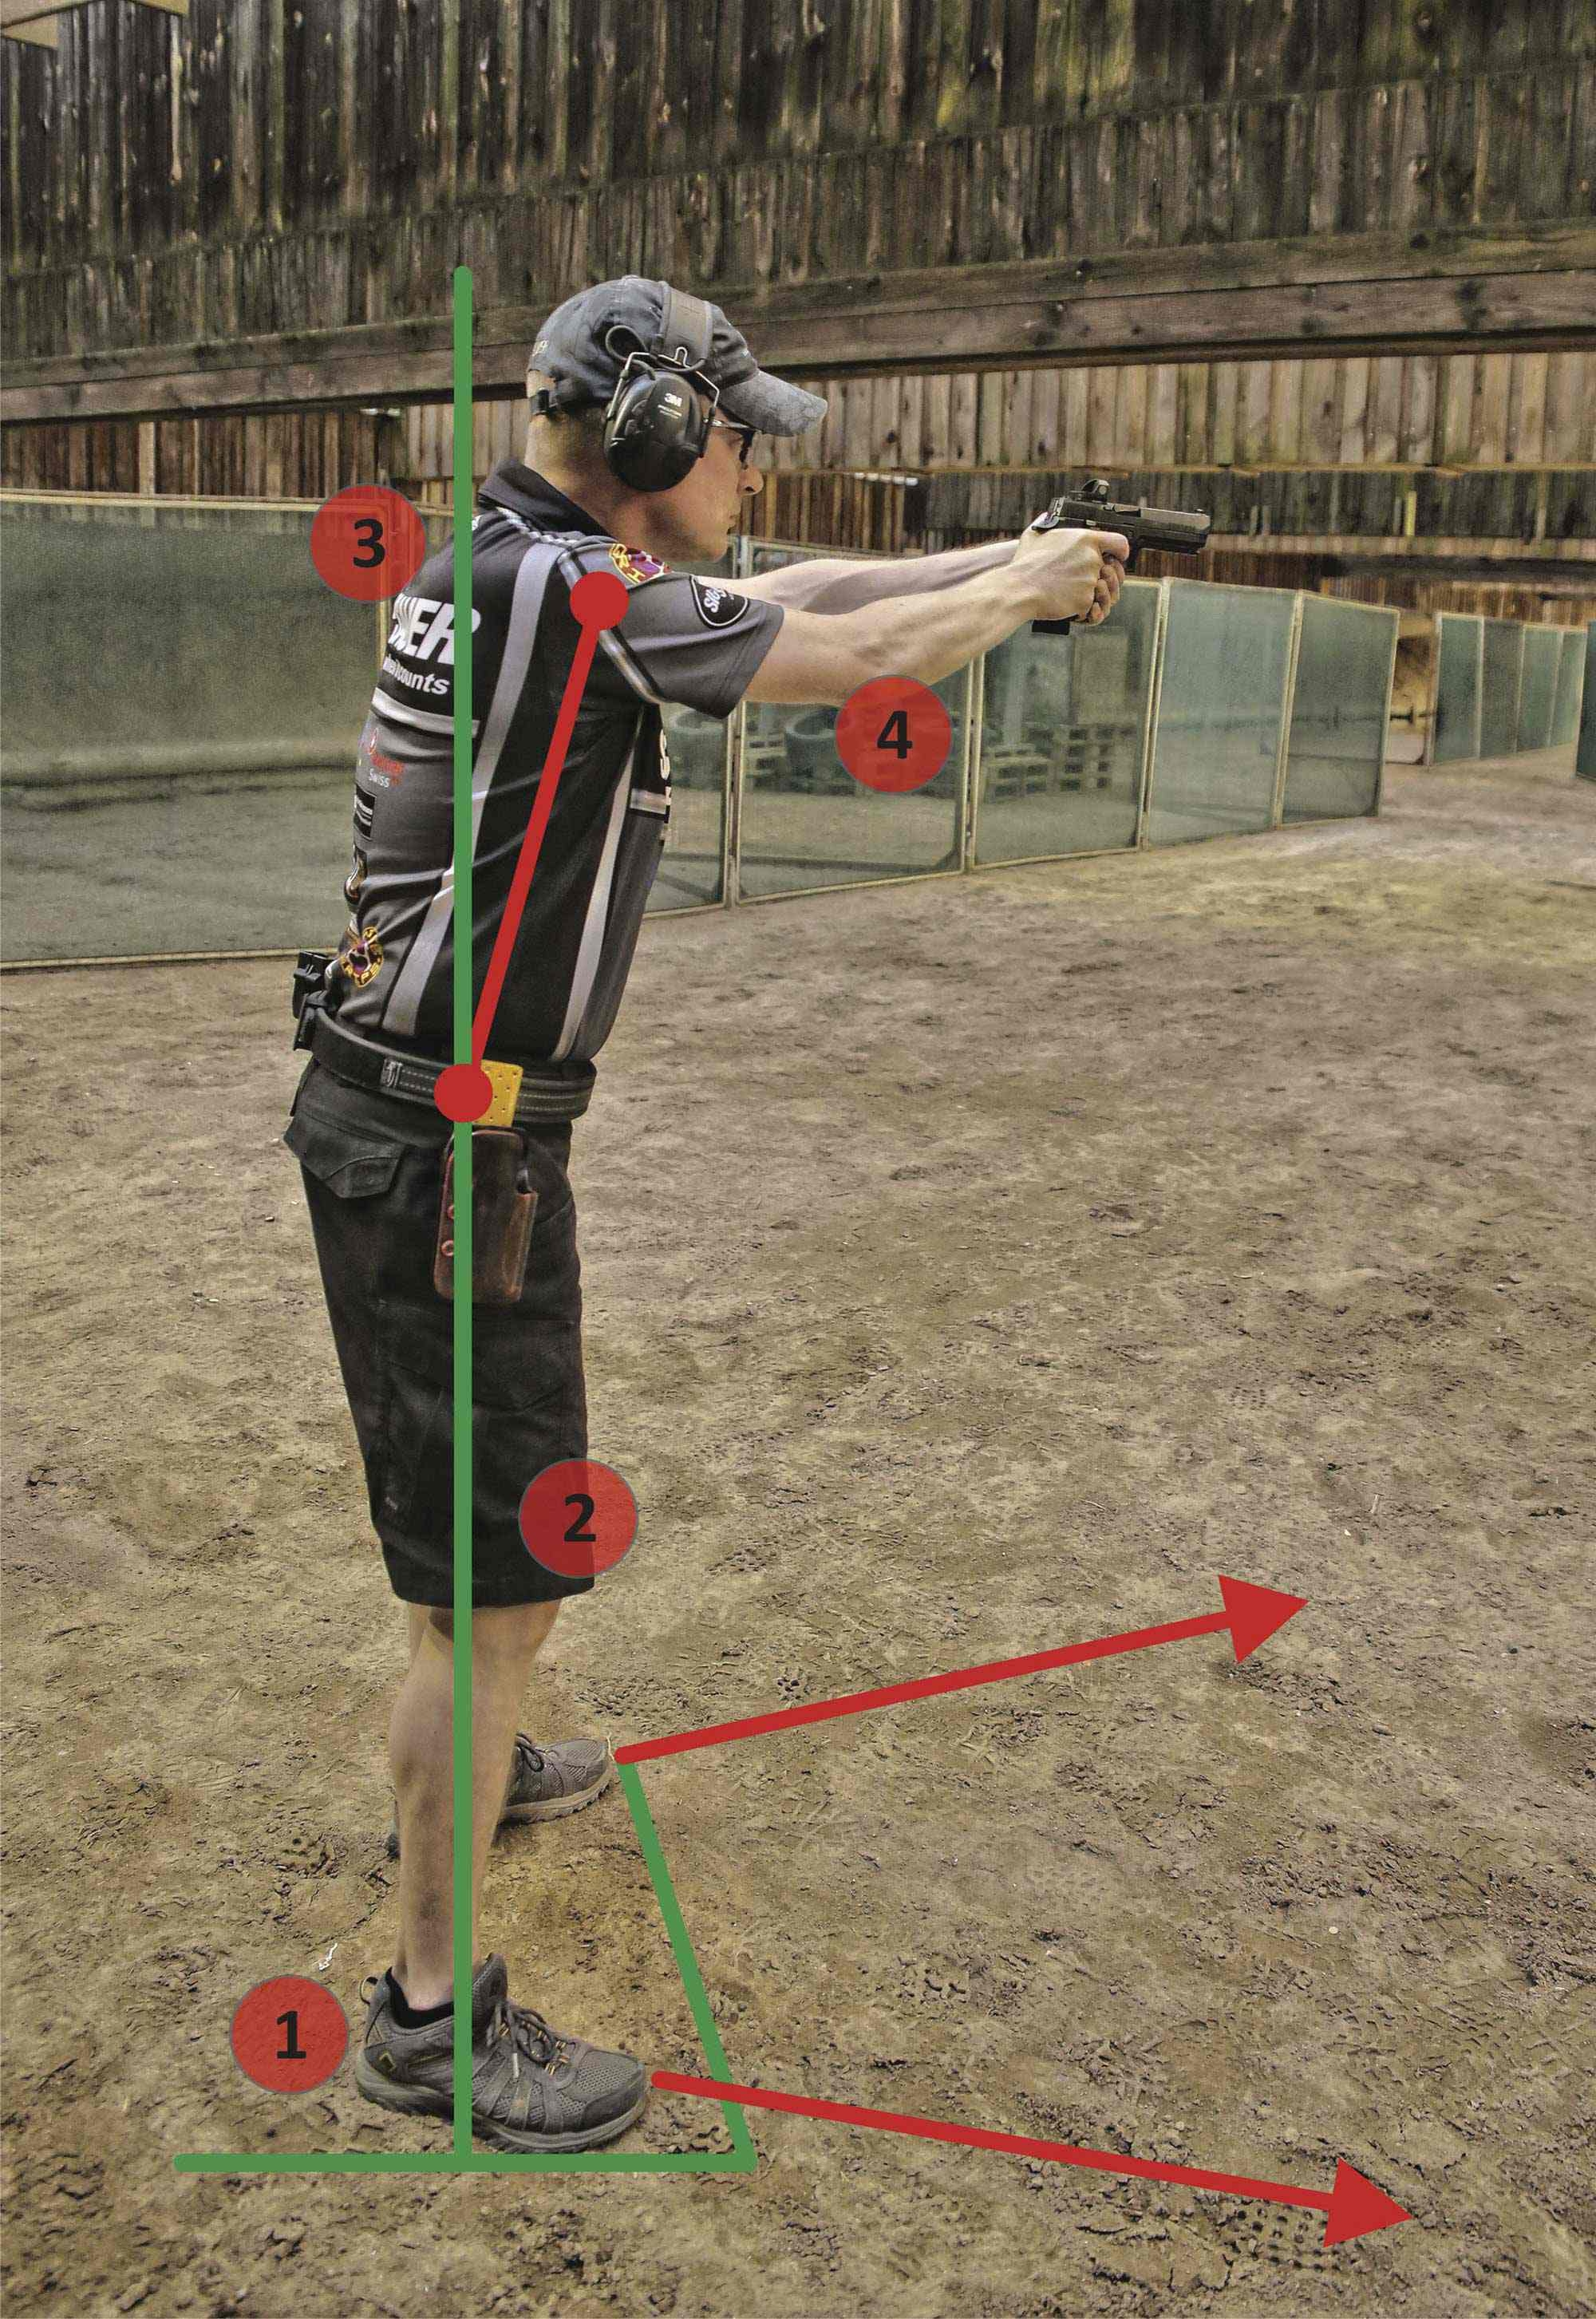 Four points must be taken into account for the correct posture when shooting.